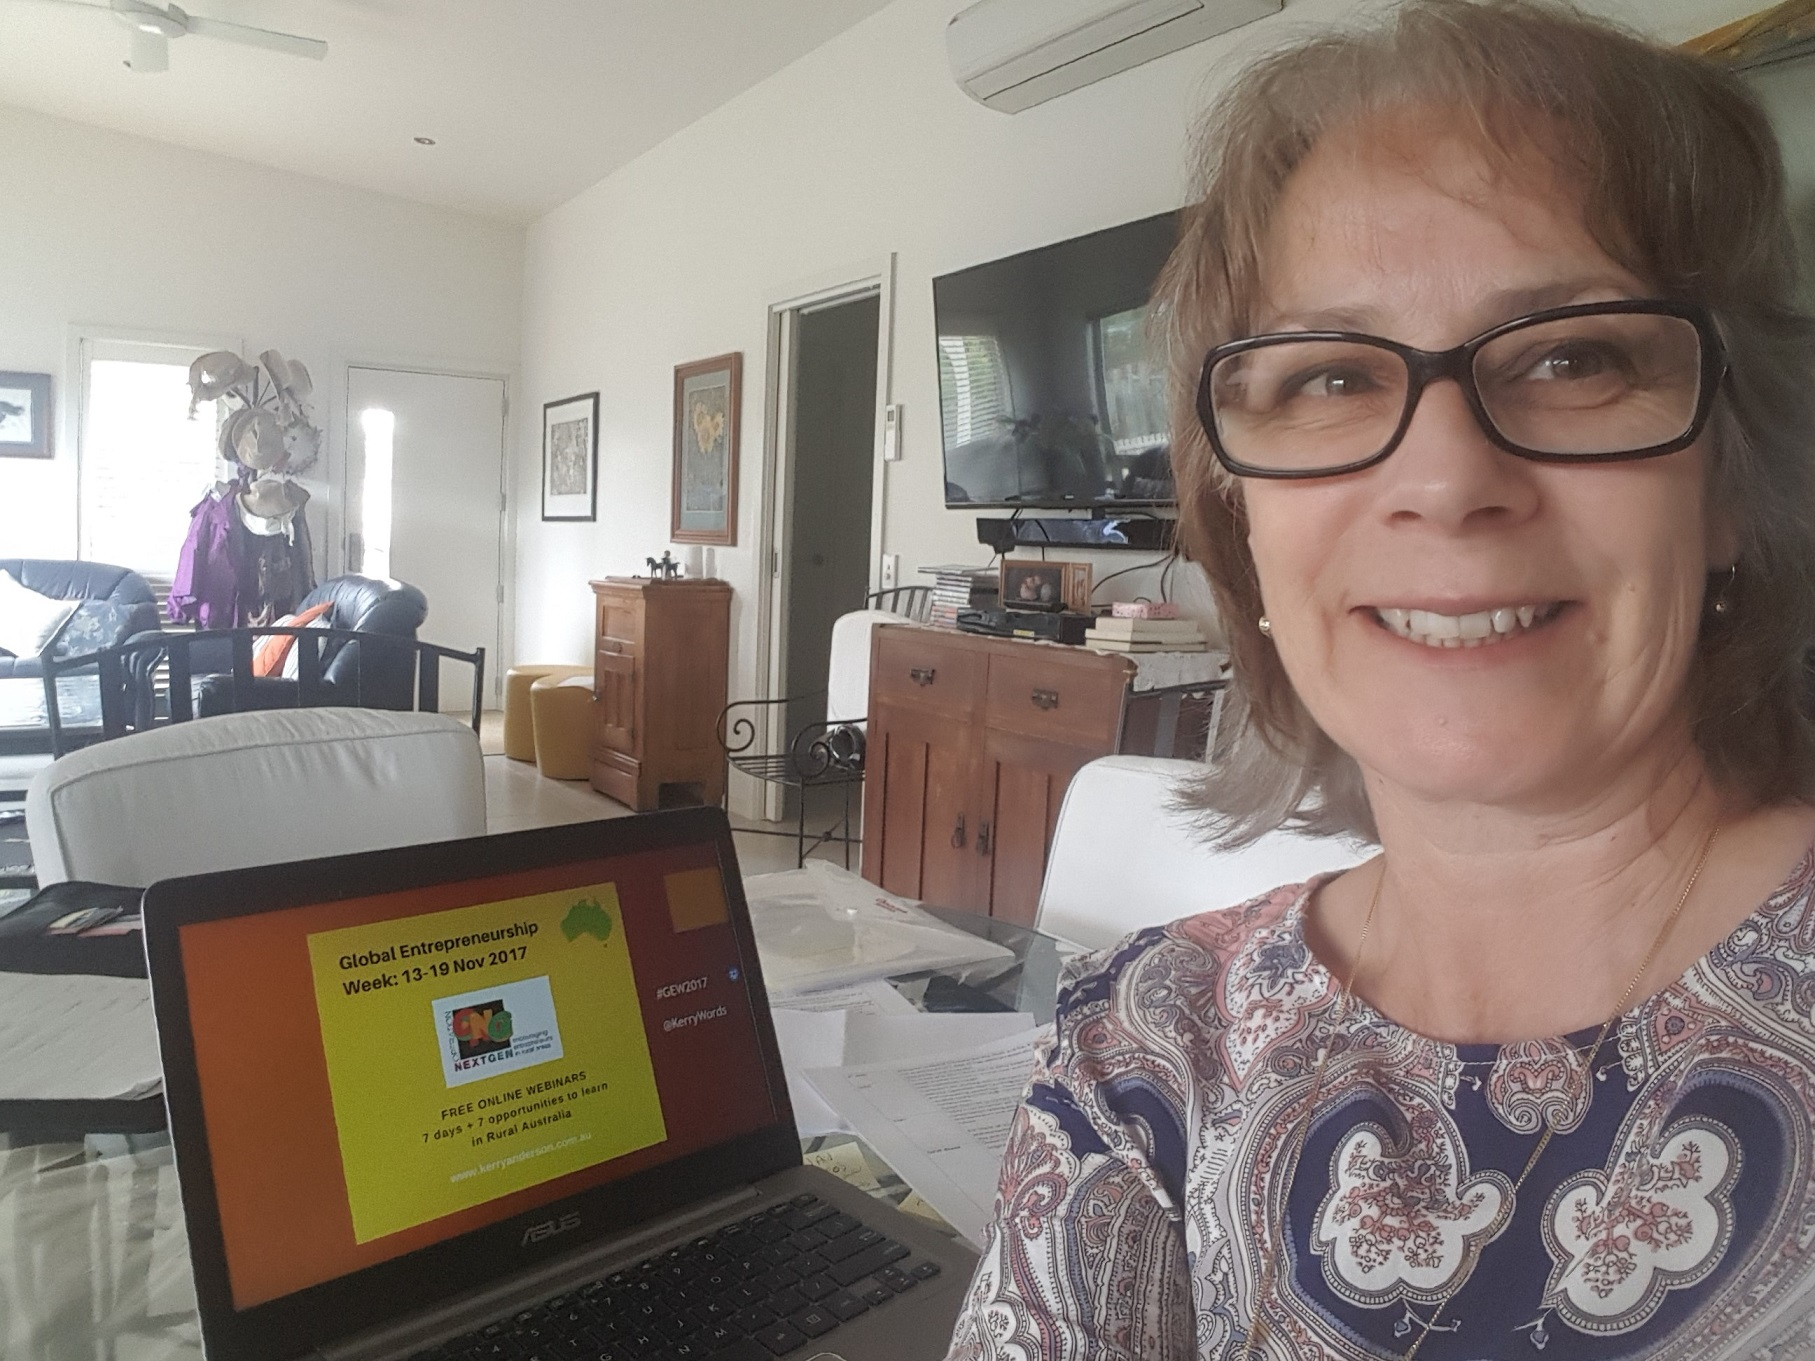 Kerry at her home with her laptop